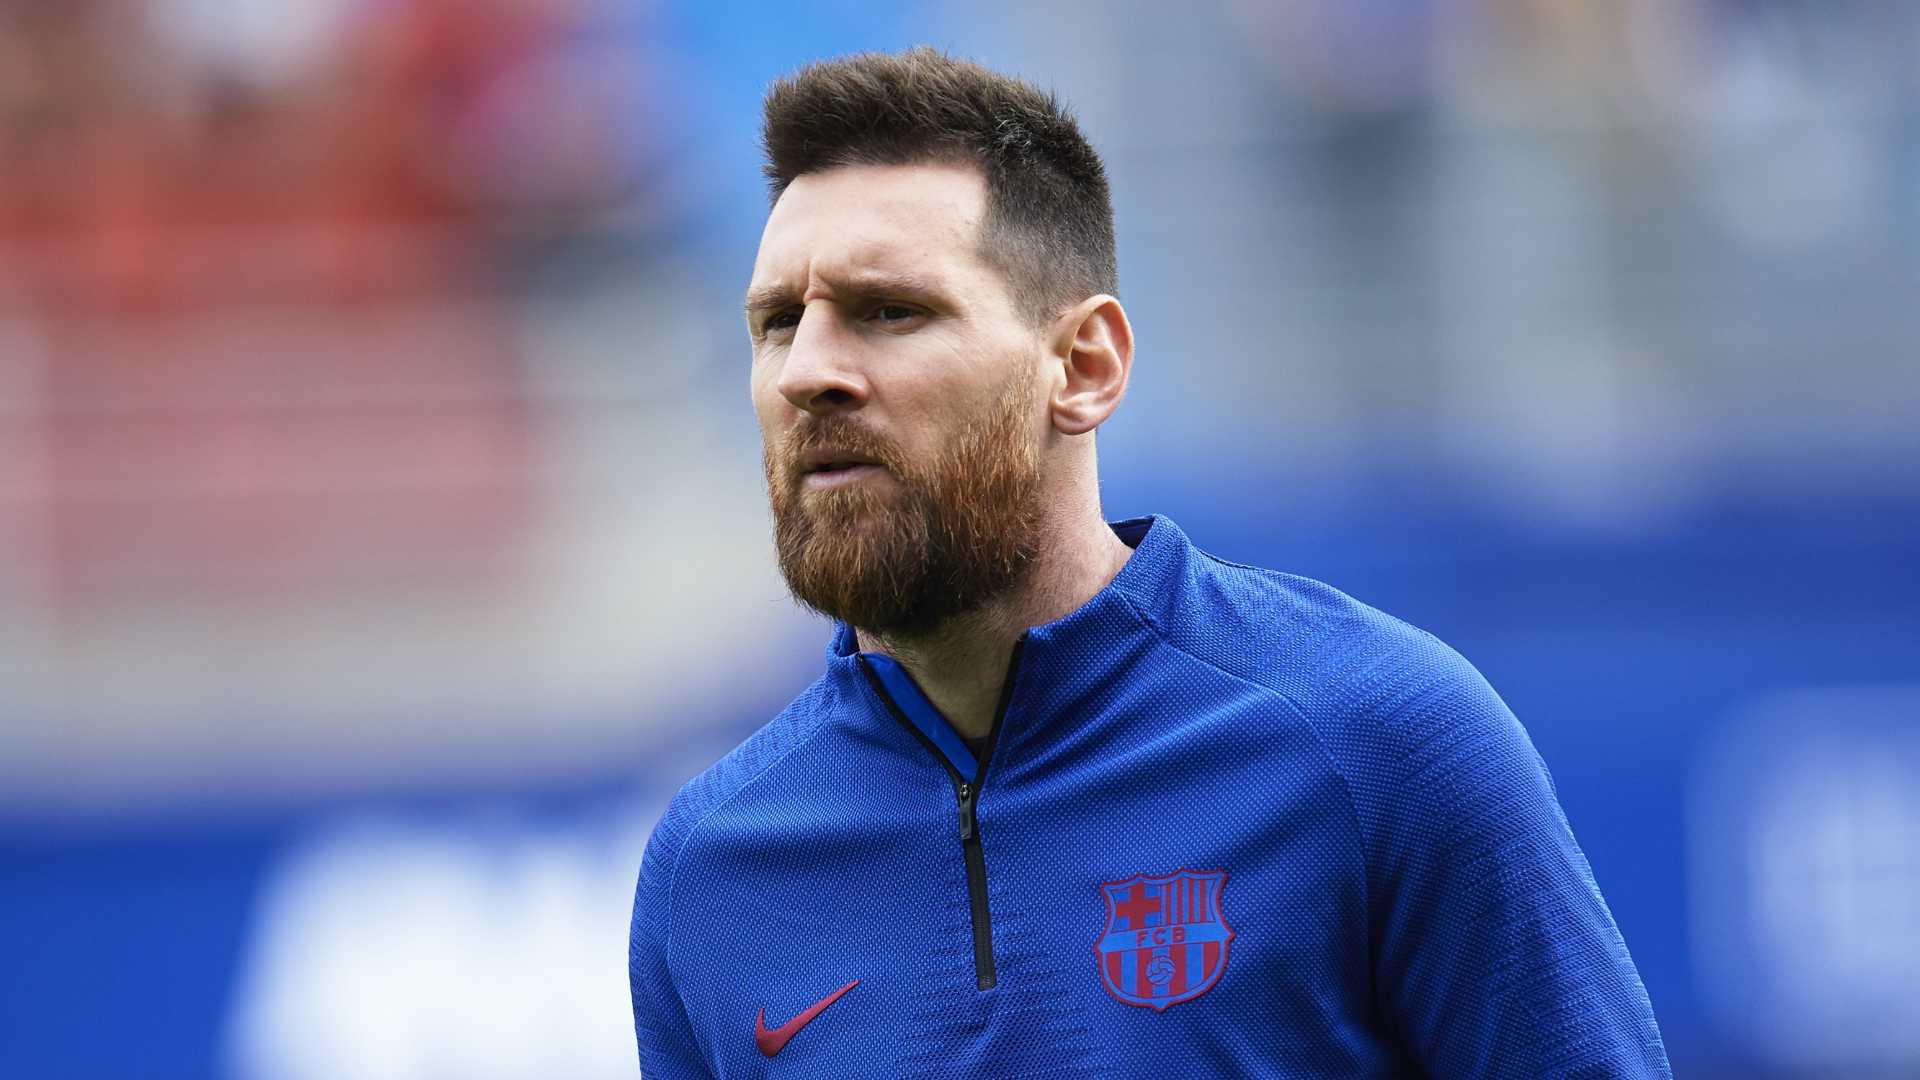 Messi apprehensive about pursuing Newell's dream in 'crazier' Argentina